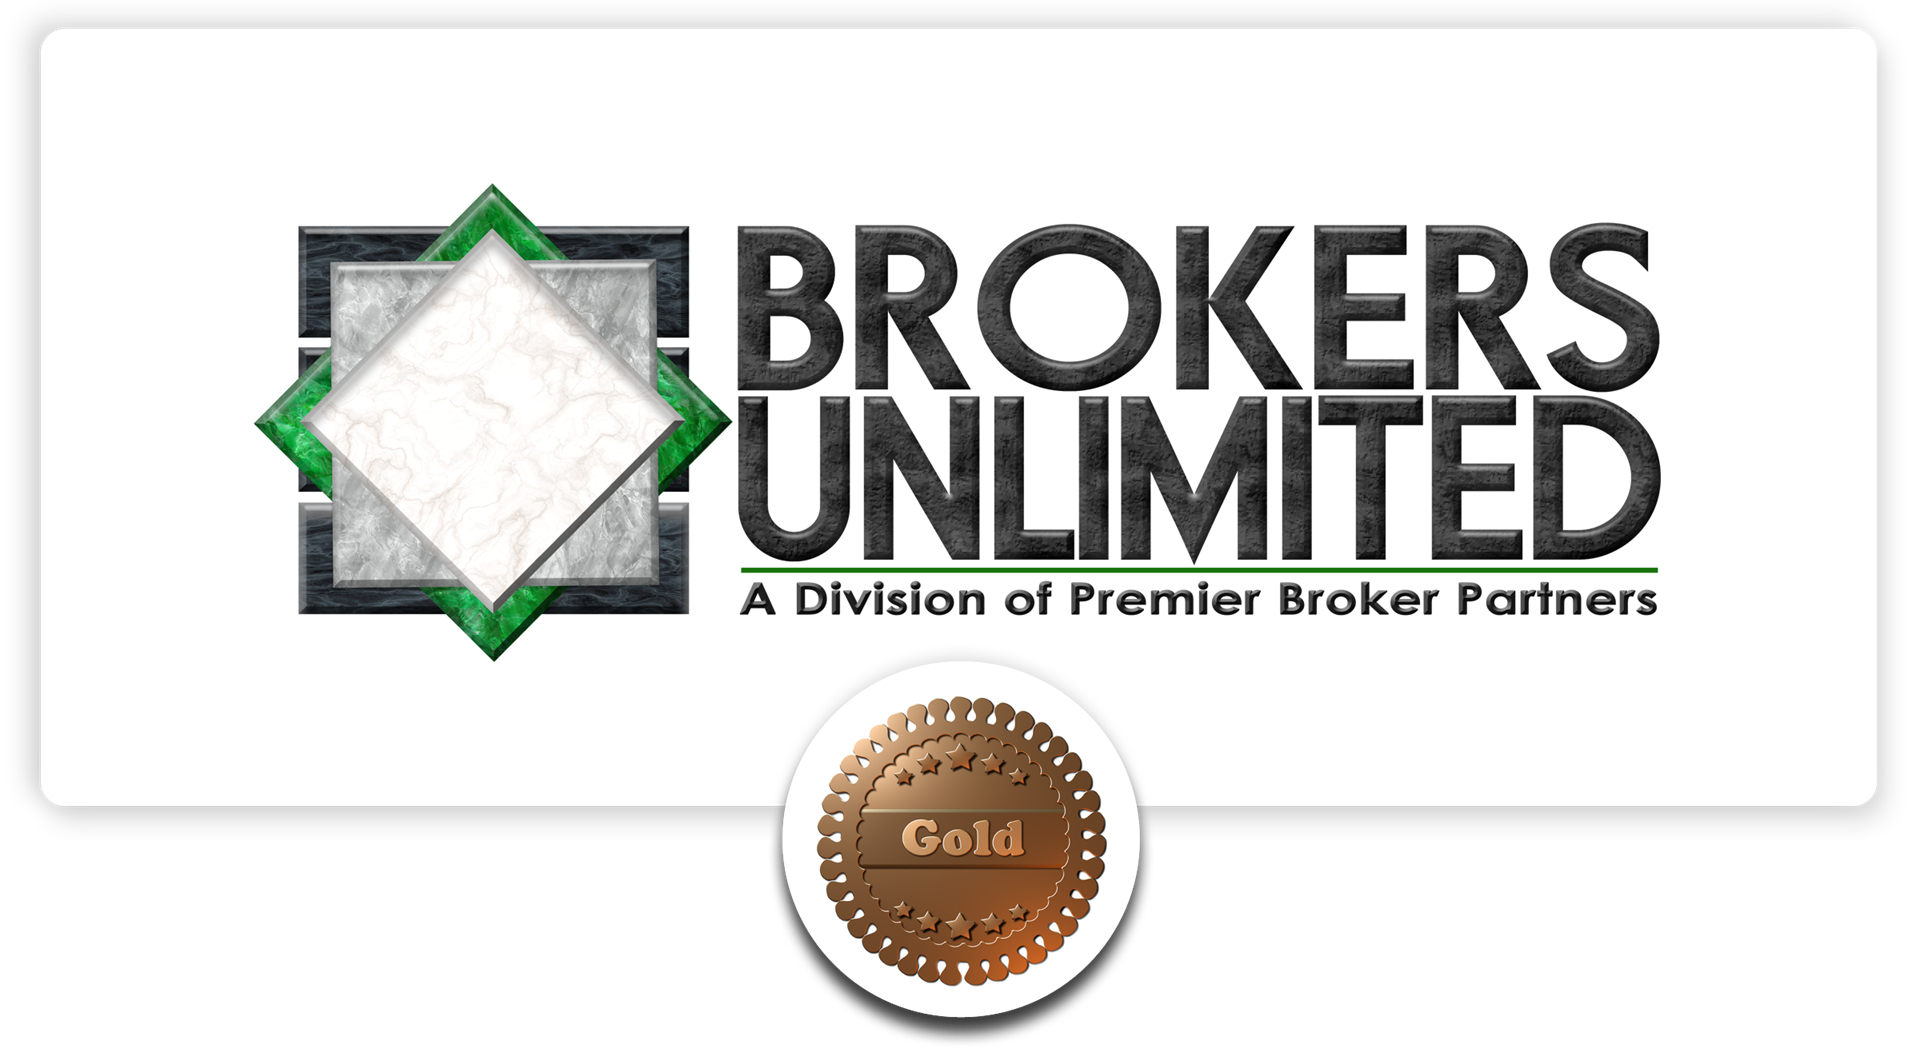 Brokers Unlimited